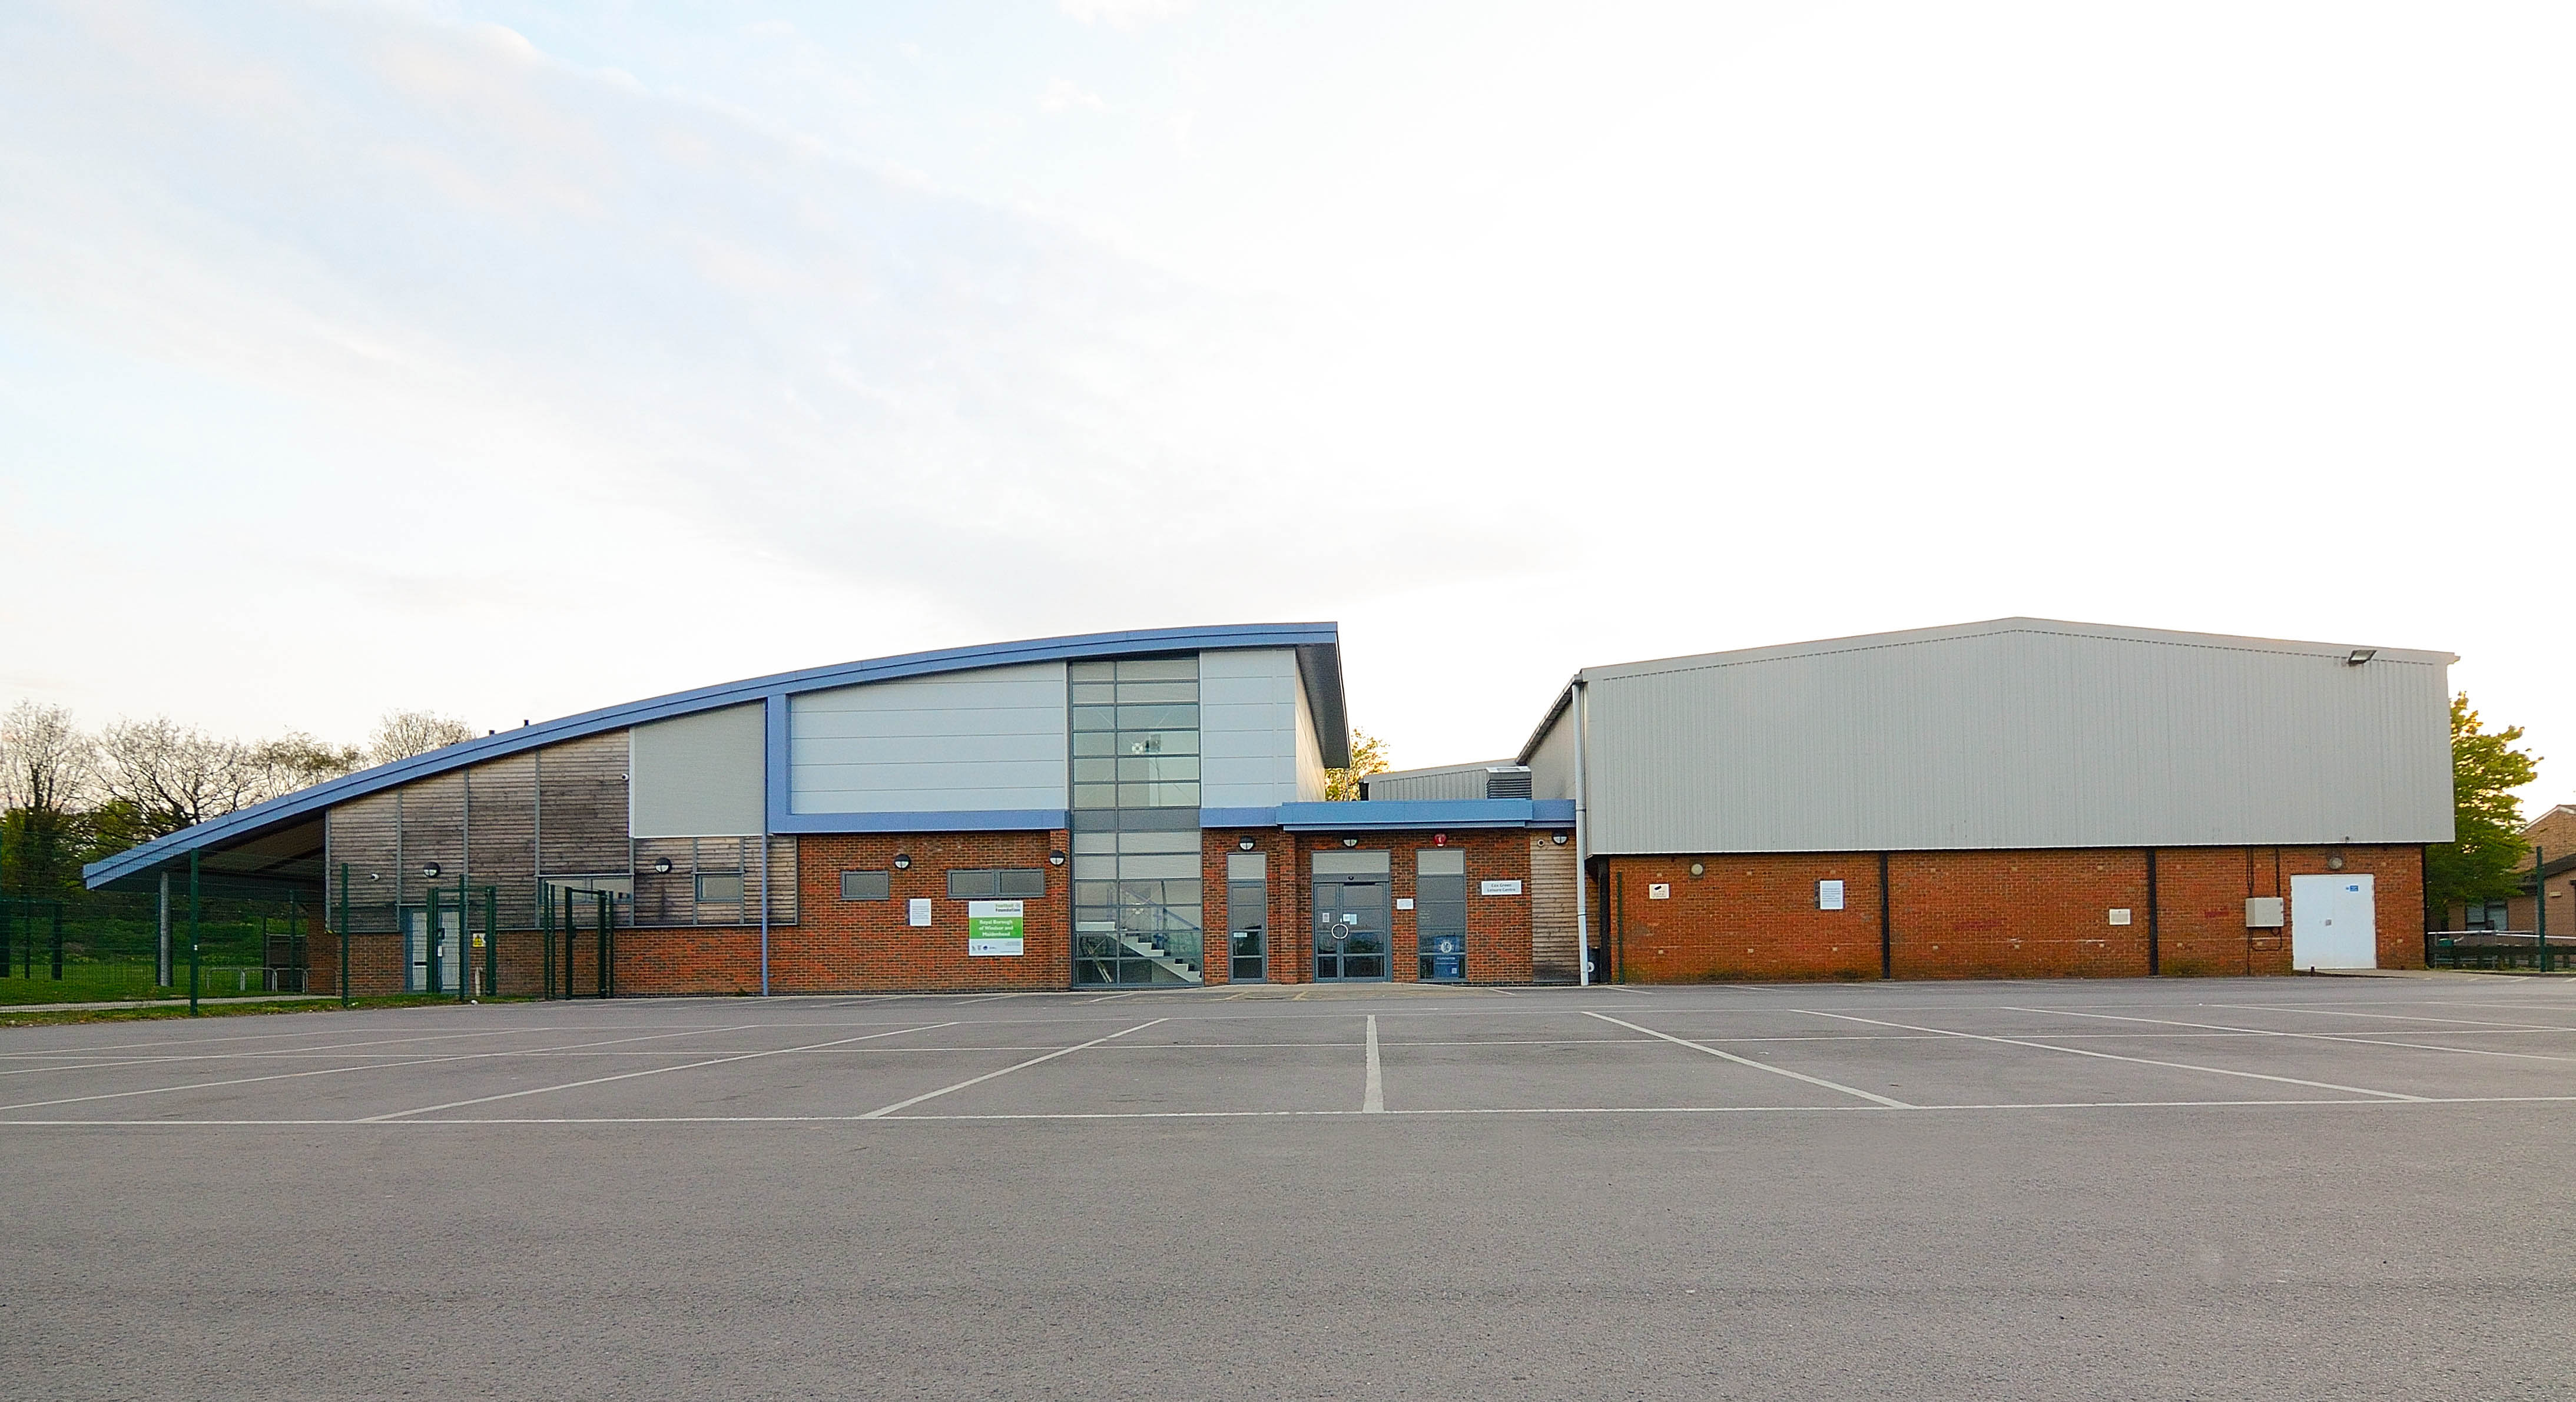 Cox Green Leisure Centre